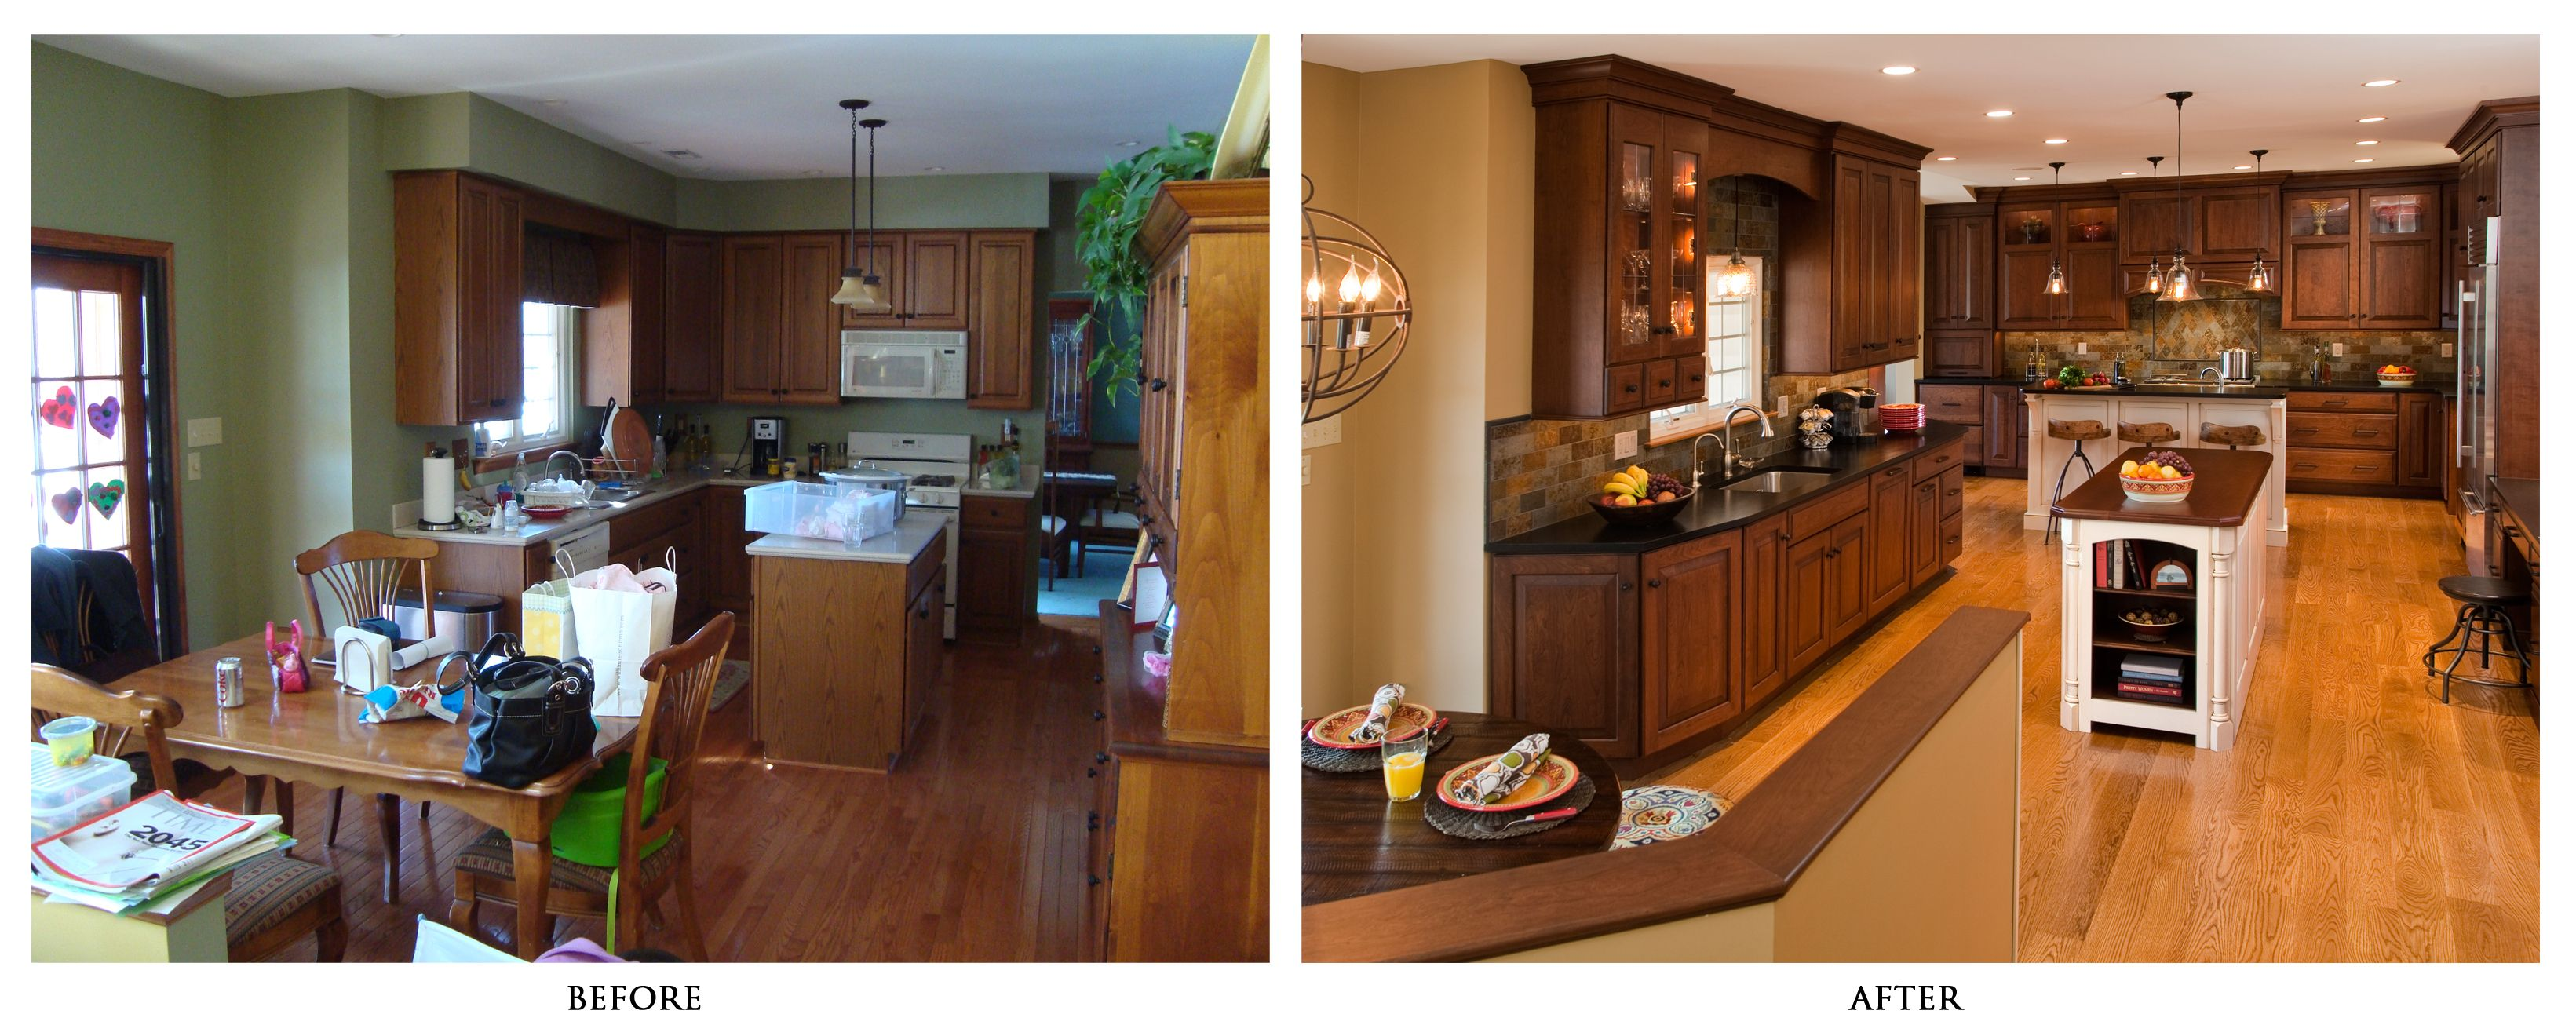 ordinary Kitchen Remodeling Before And After #1: 1000+ images about Before u0026amp; After on Pinterest | Before and after pictures, Home remodeling and Mobile home remodeling